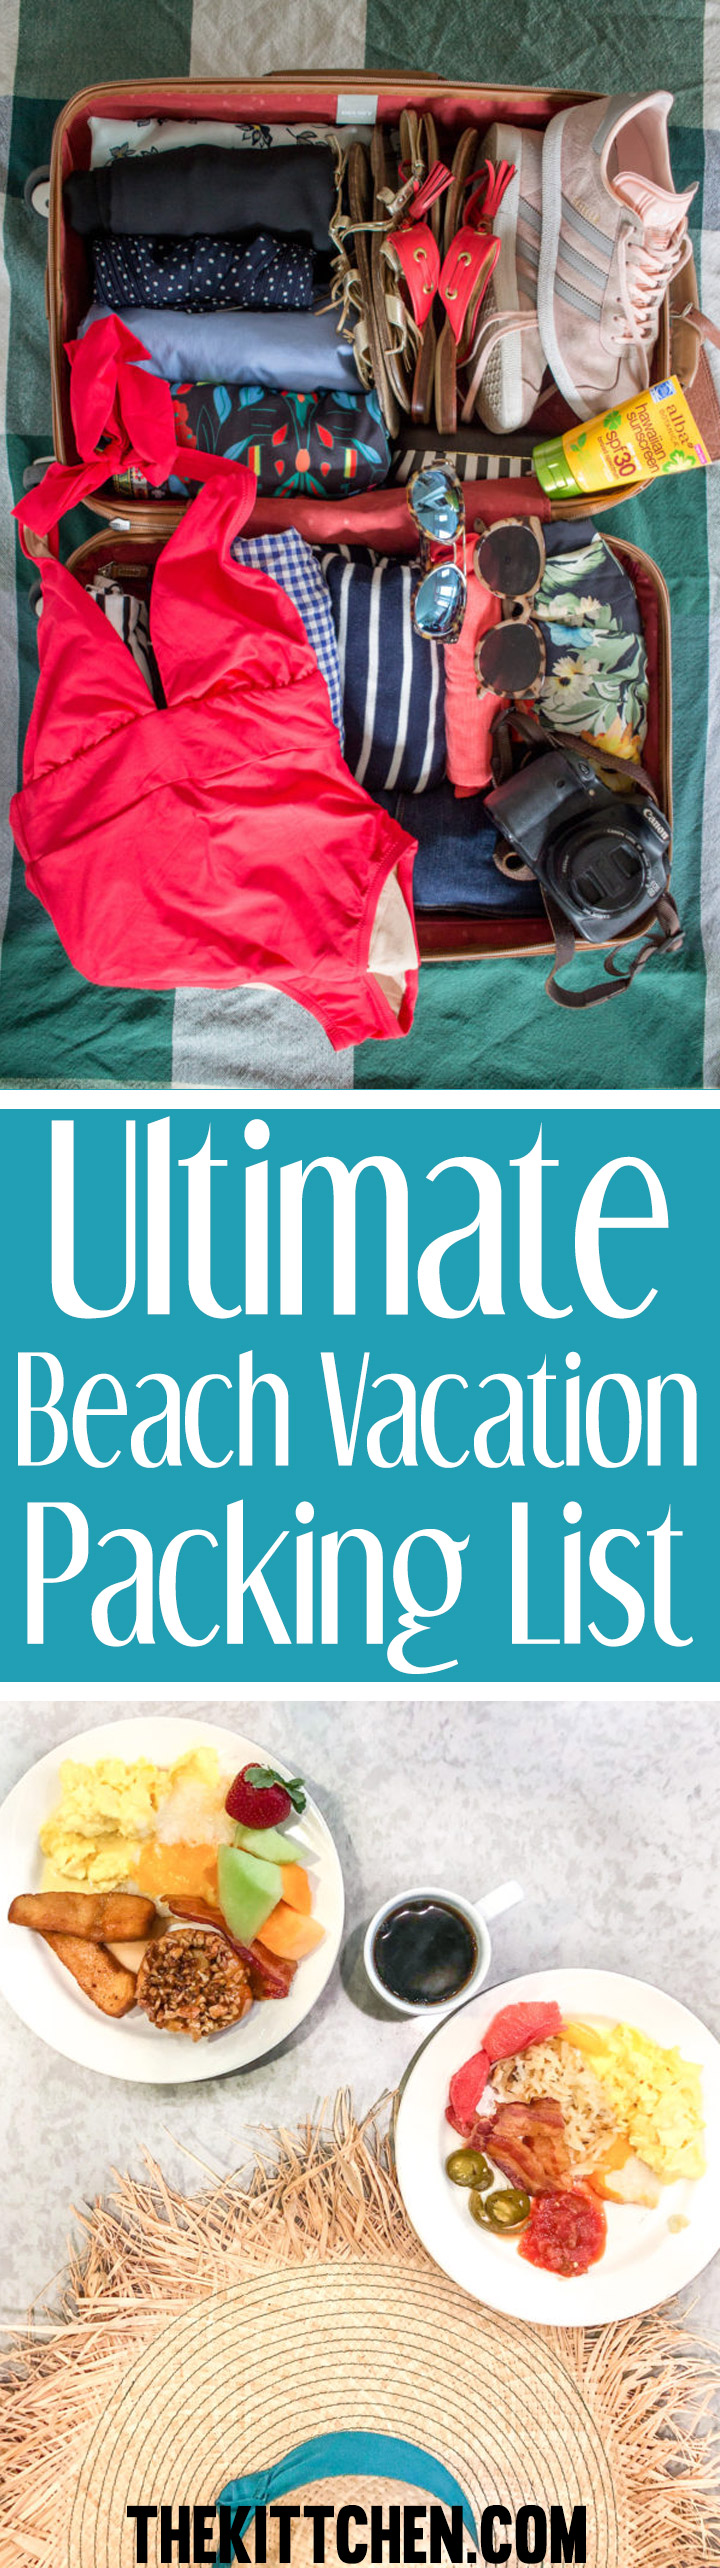 This beach vacation packing list will help you prepare for sun and sand. This is the time of year when I am ready to escape Chicago's chilly temps and relax on the beach. I am probably not the only person who feels that way.